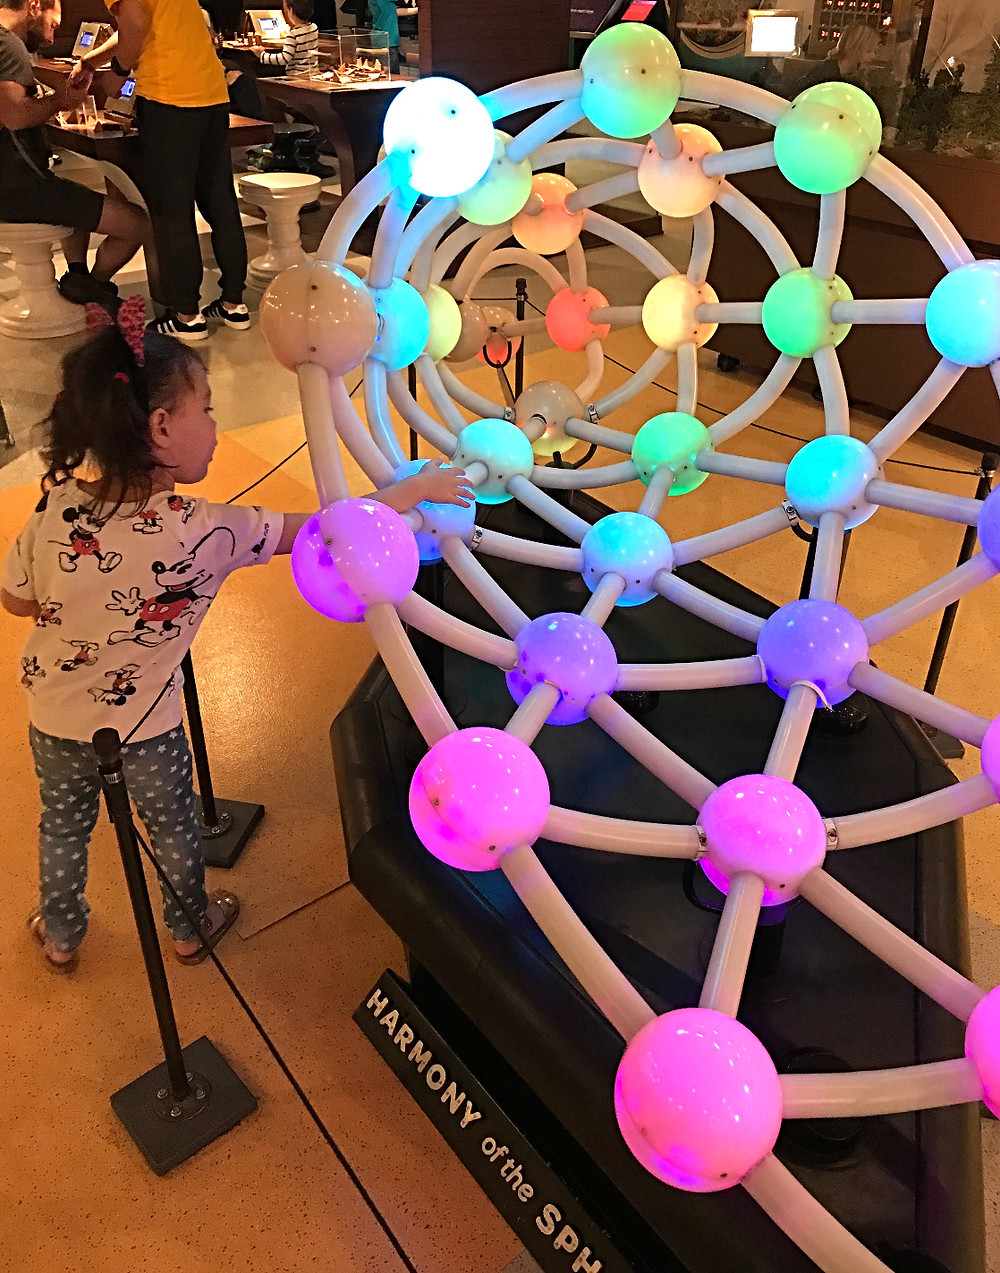 MoMath, The National Museum of Mathematics, children's museum, STEM fo kids, STEAM for kids, things to do this summer, nyc kids, nyc summer, curious g and me,harmony of the spears